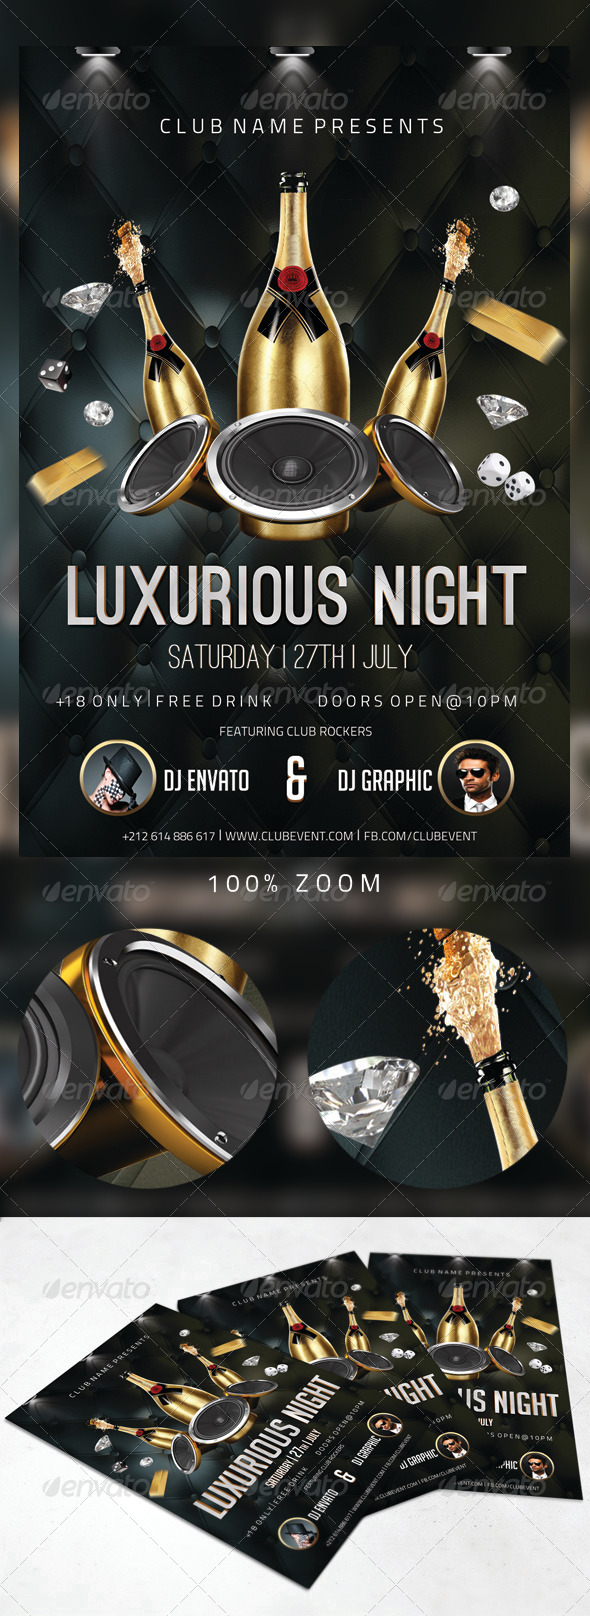 Luxurious Night Party Flyer - Clubs & Parties Events